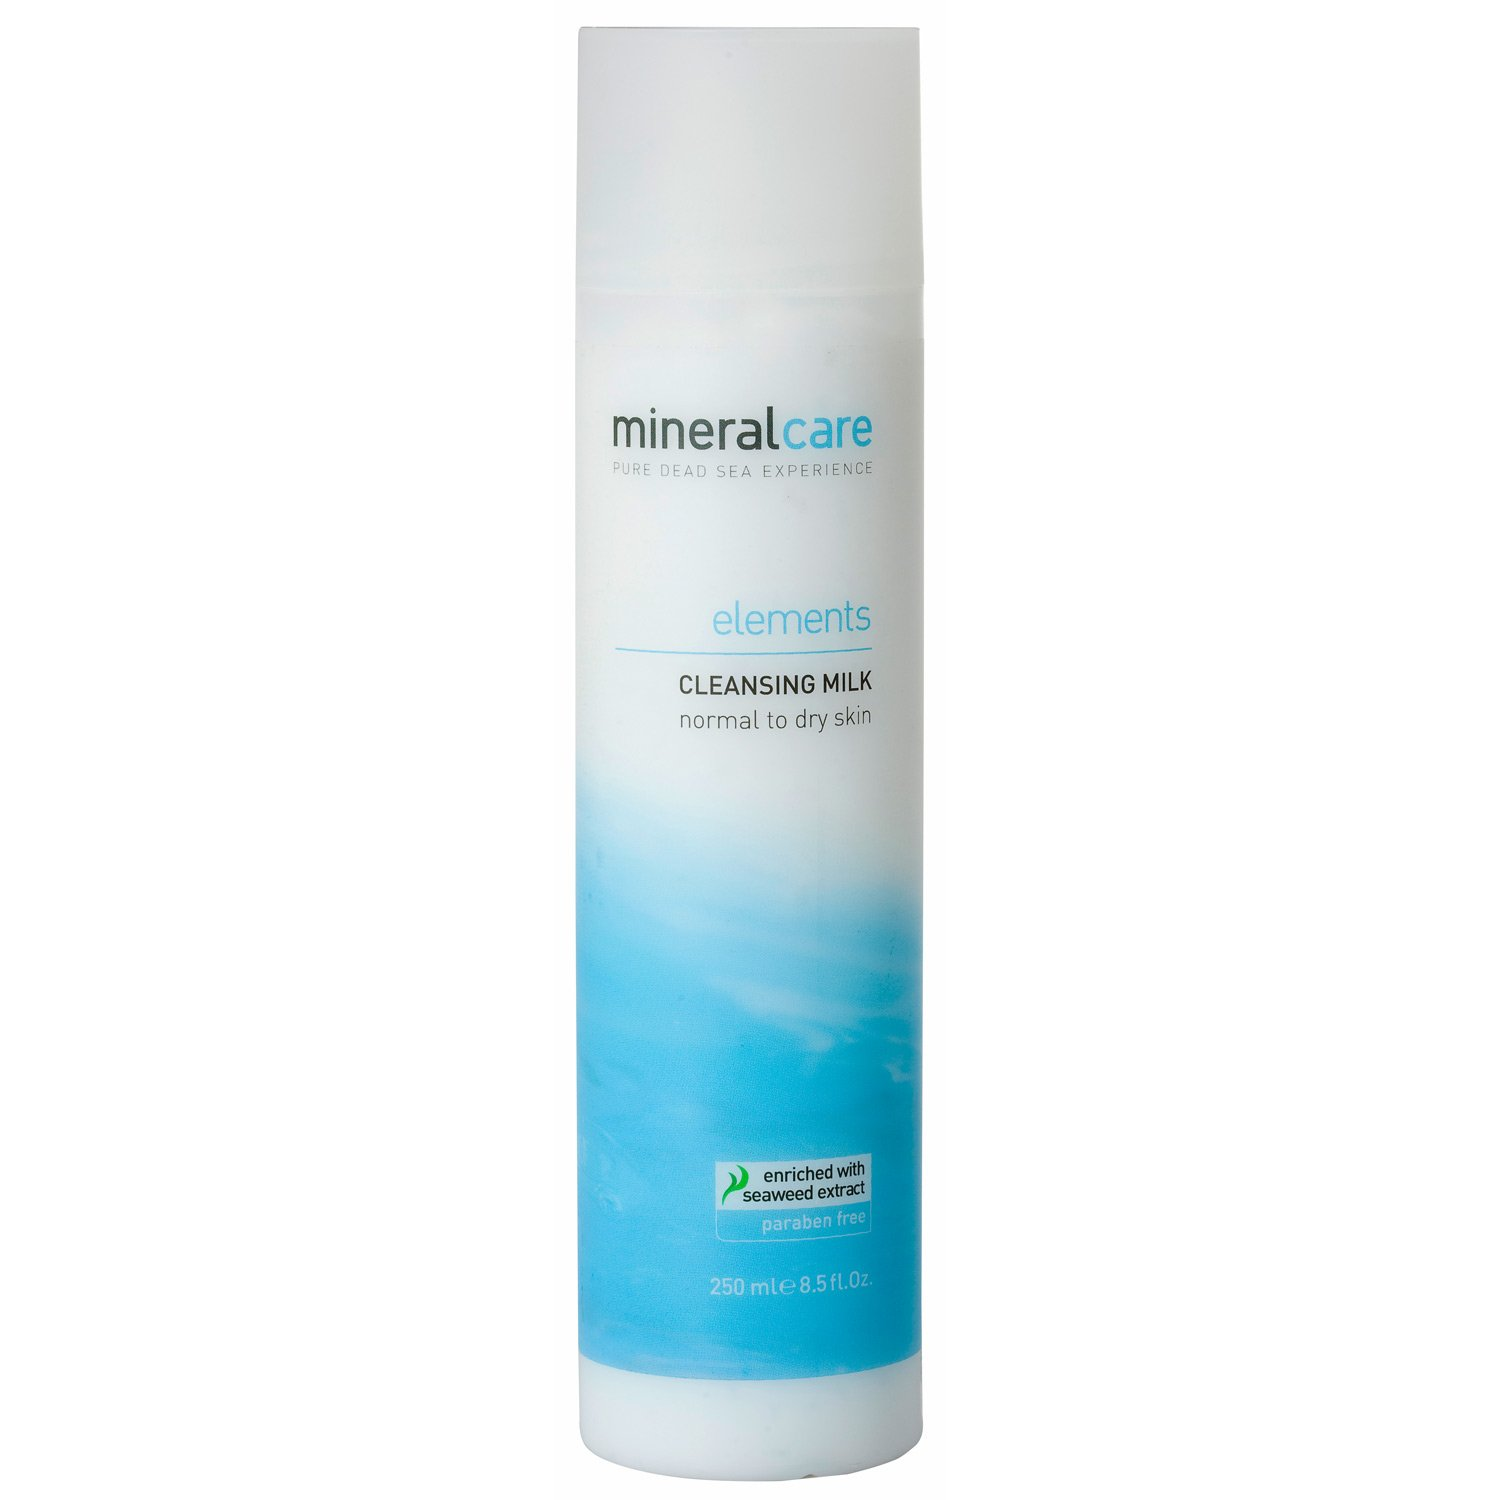 Mineral Care Cleansing Milk 250 ml normal to dry skin (Blue)